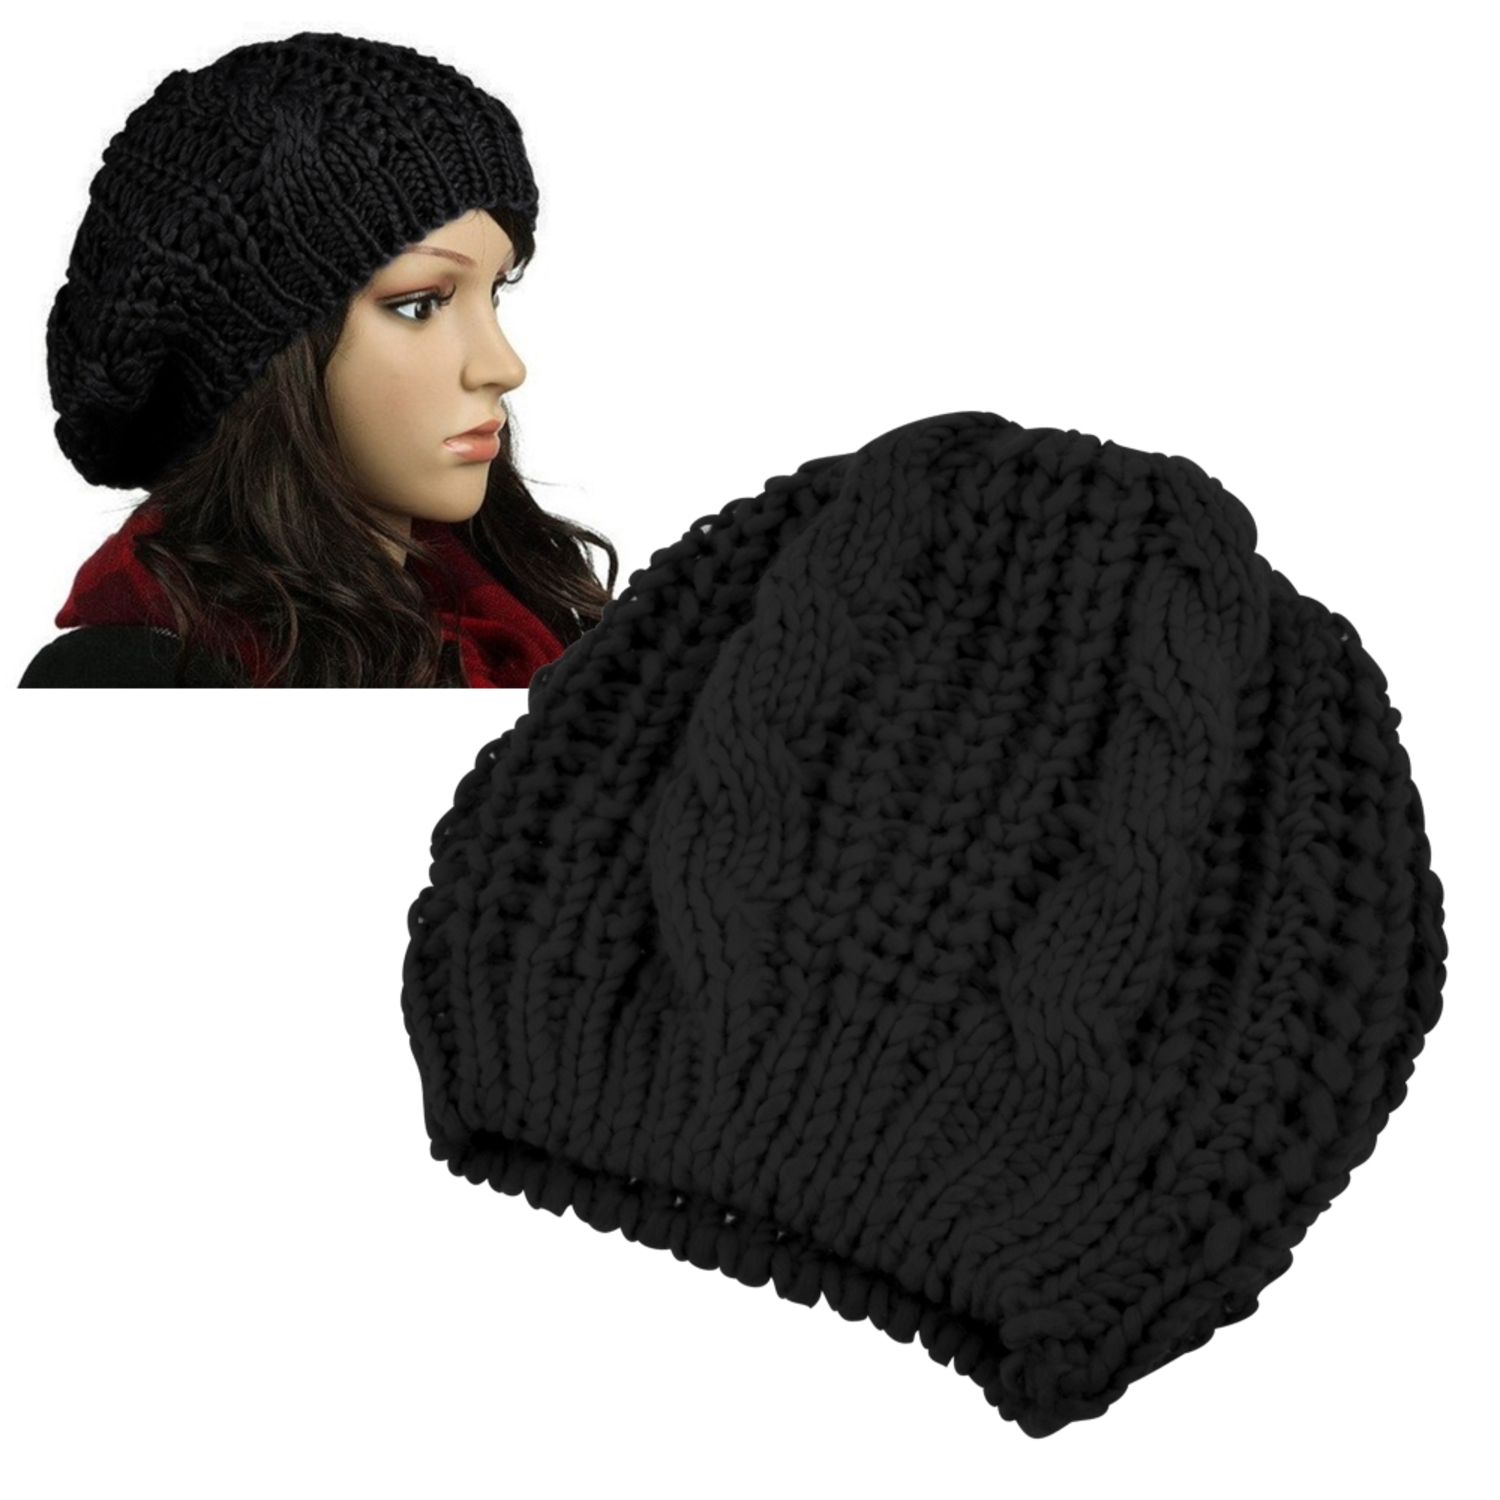 Zodaca Black Knit Beanie for Womens Mens Unisex